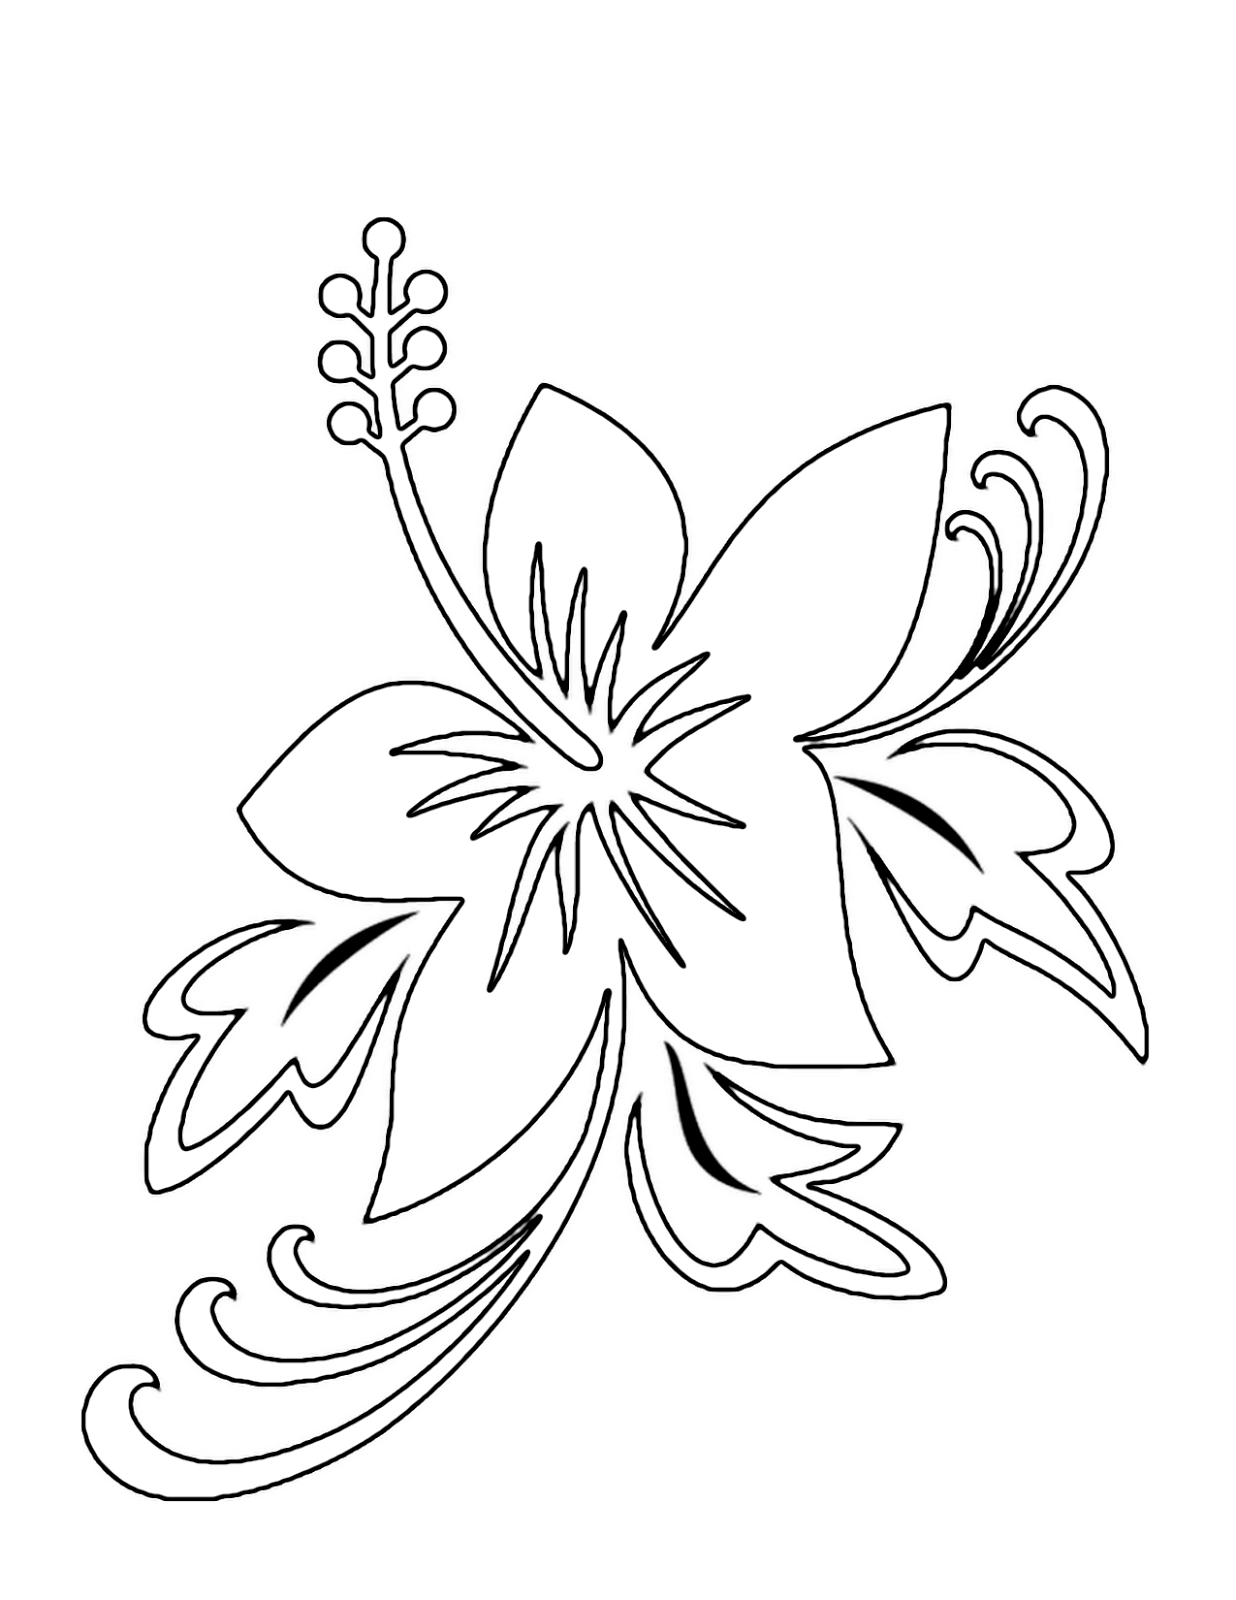 coloring page flowers - print out coloring pages of flowers